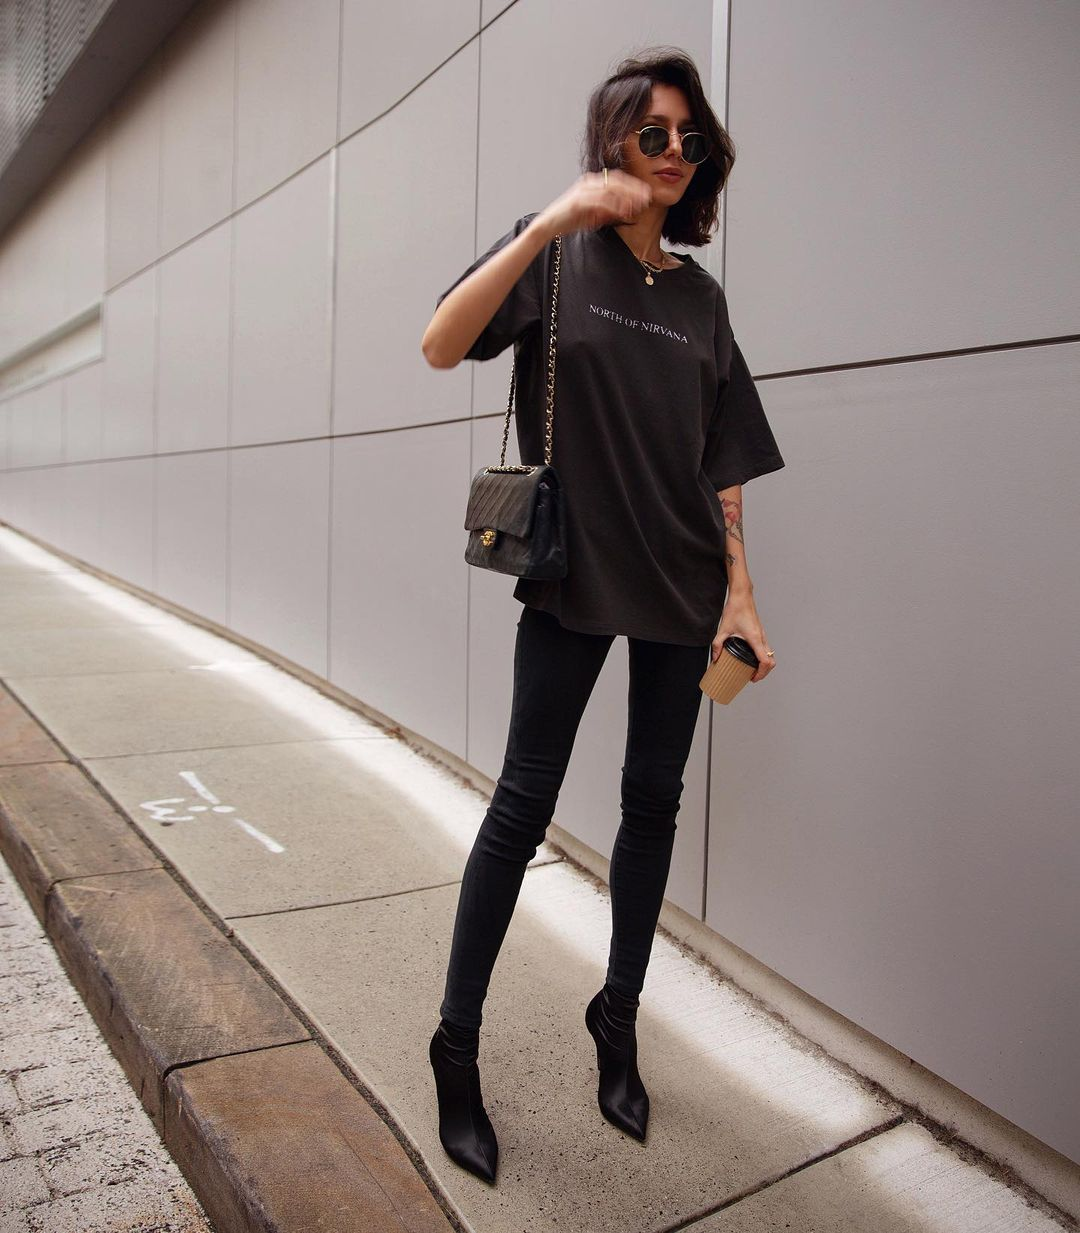 chanel bag, street style, and blogger image